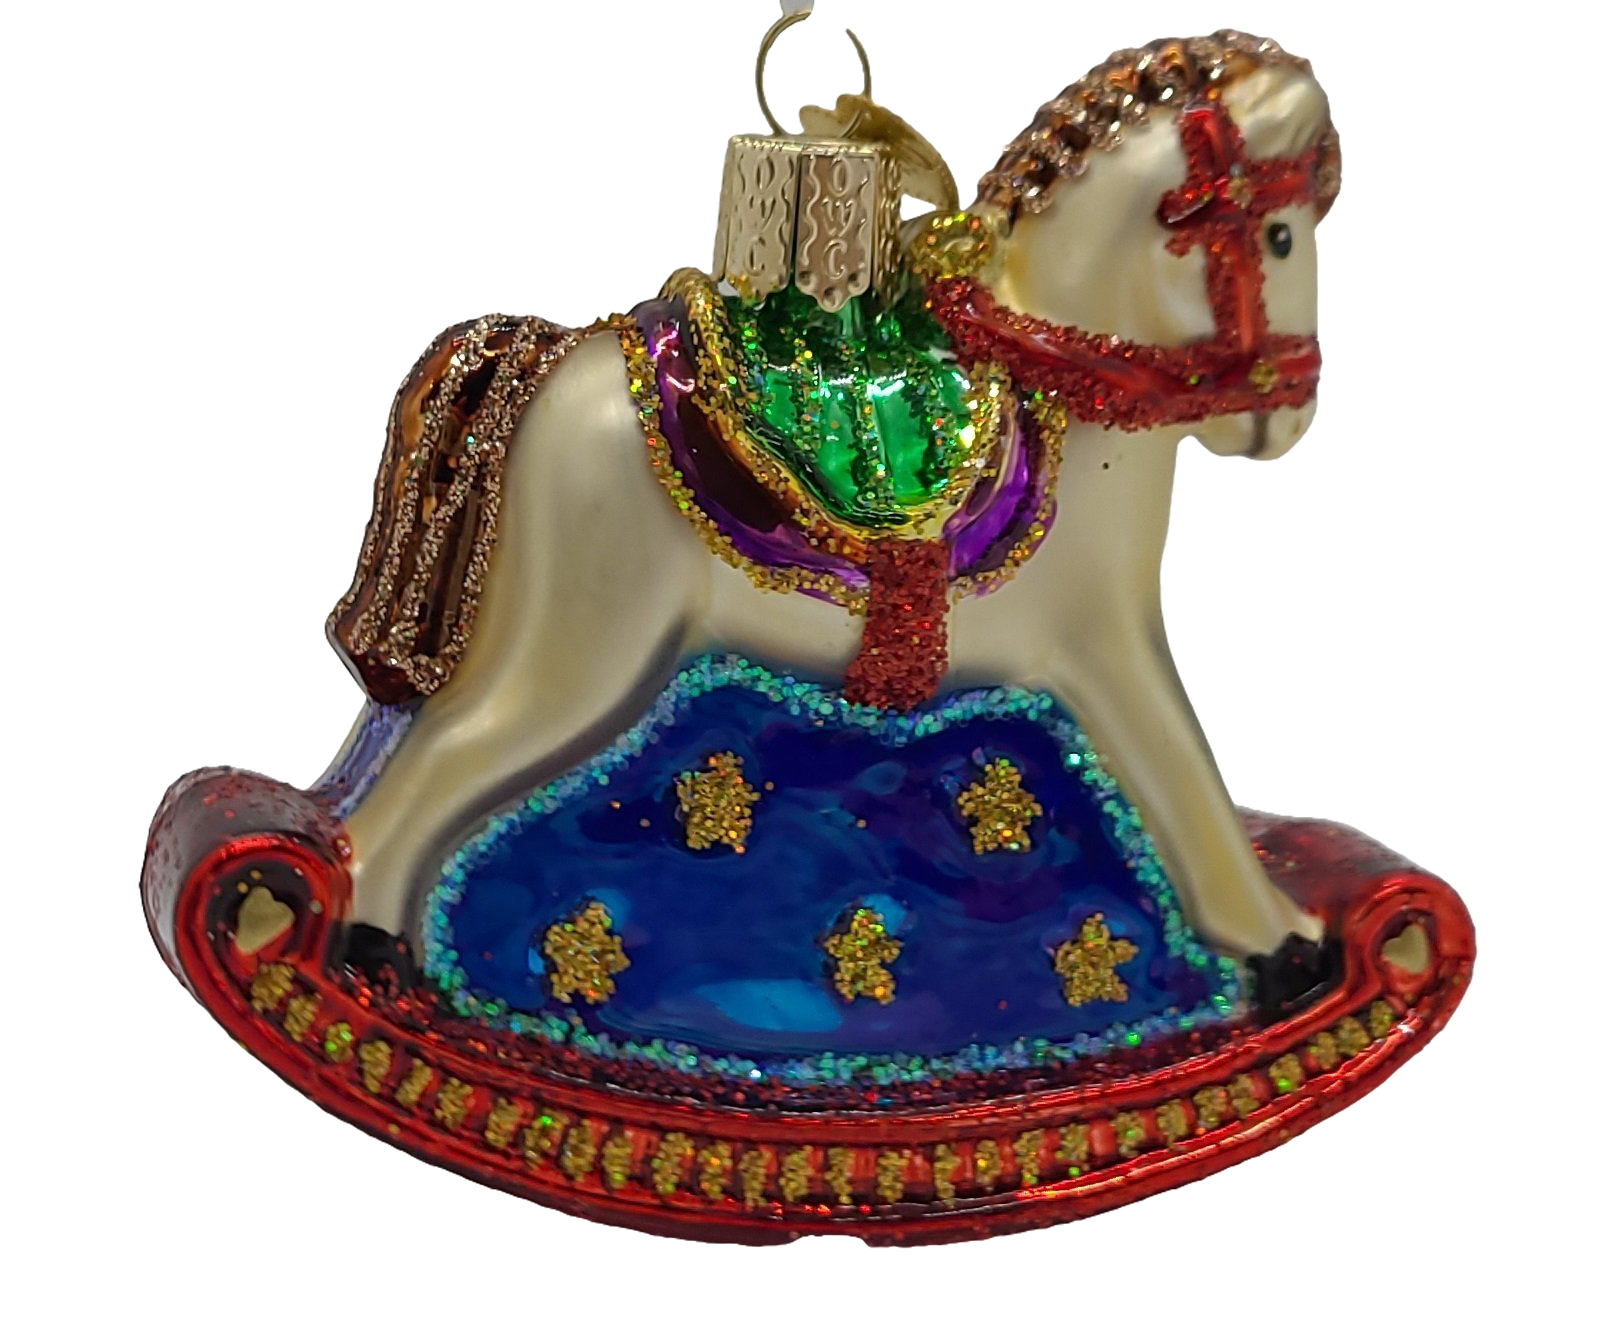 Blown Glass Hanging Rocking Horse Christmas Ornament - Schmidt Christmas Market Christmas Decoration